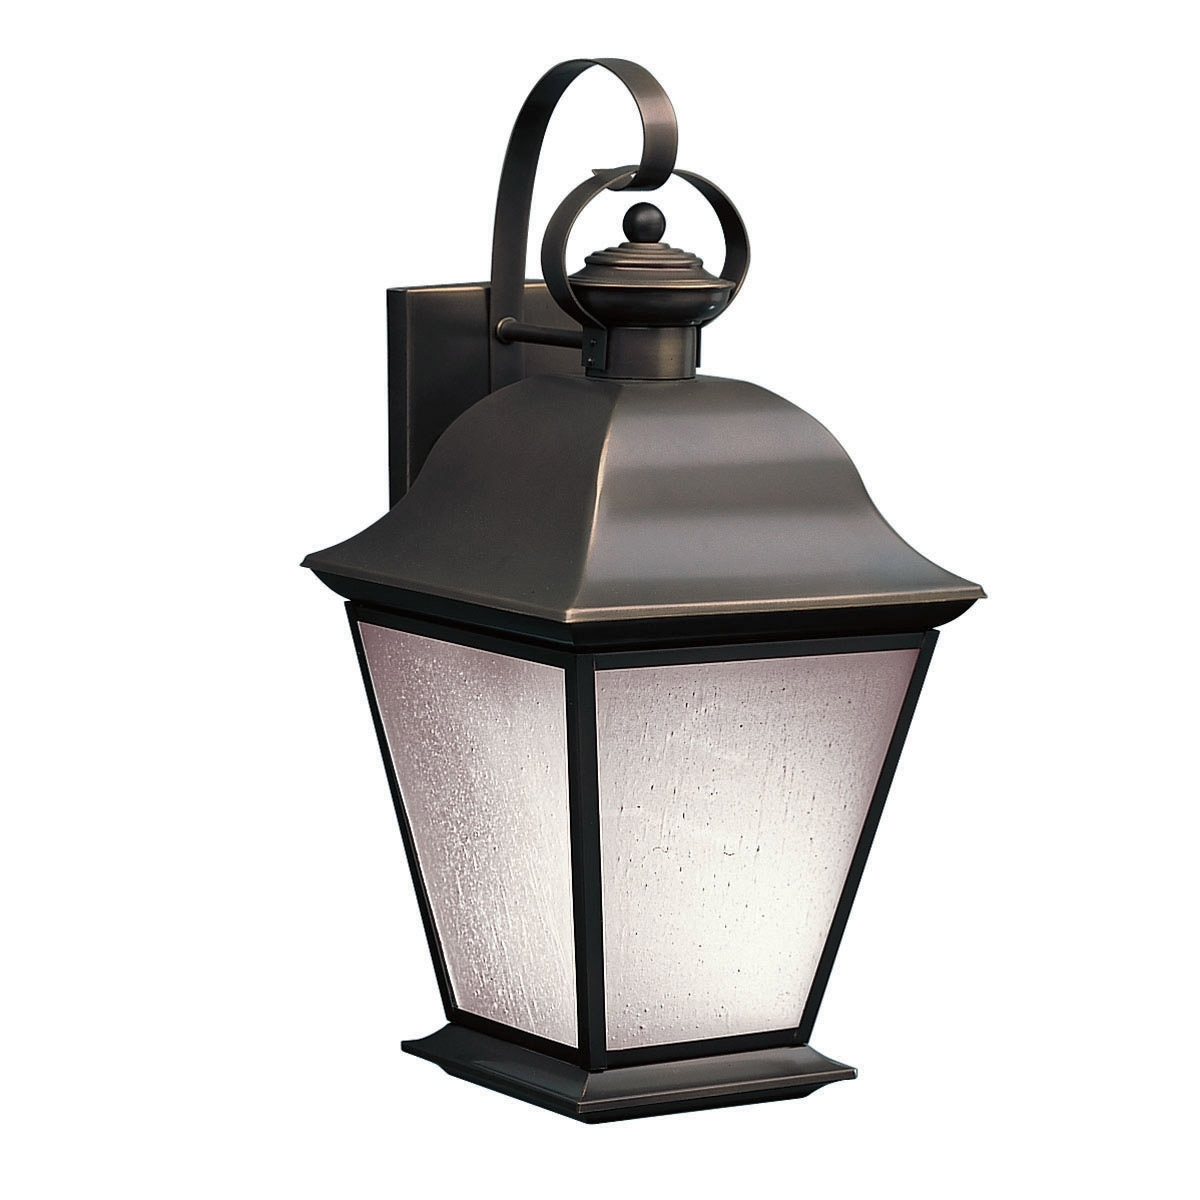 Best And Newest Wall Mounted Outdoor Lanterns With Wall Lights Design: Solar Wall Mounted Outdoor Lights In, Solar (View 7 of 20)